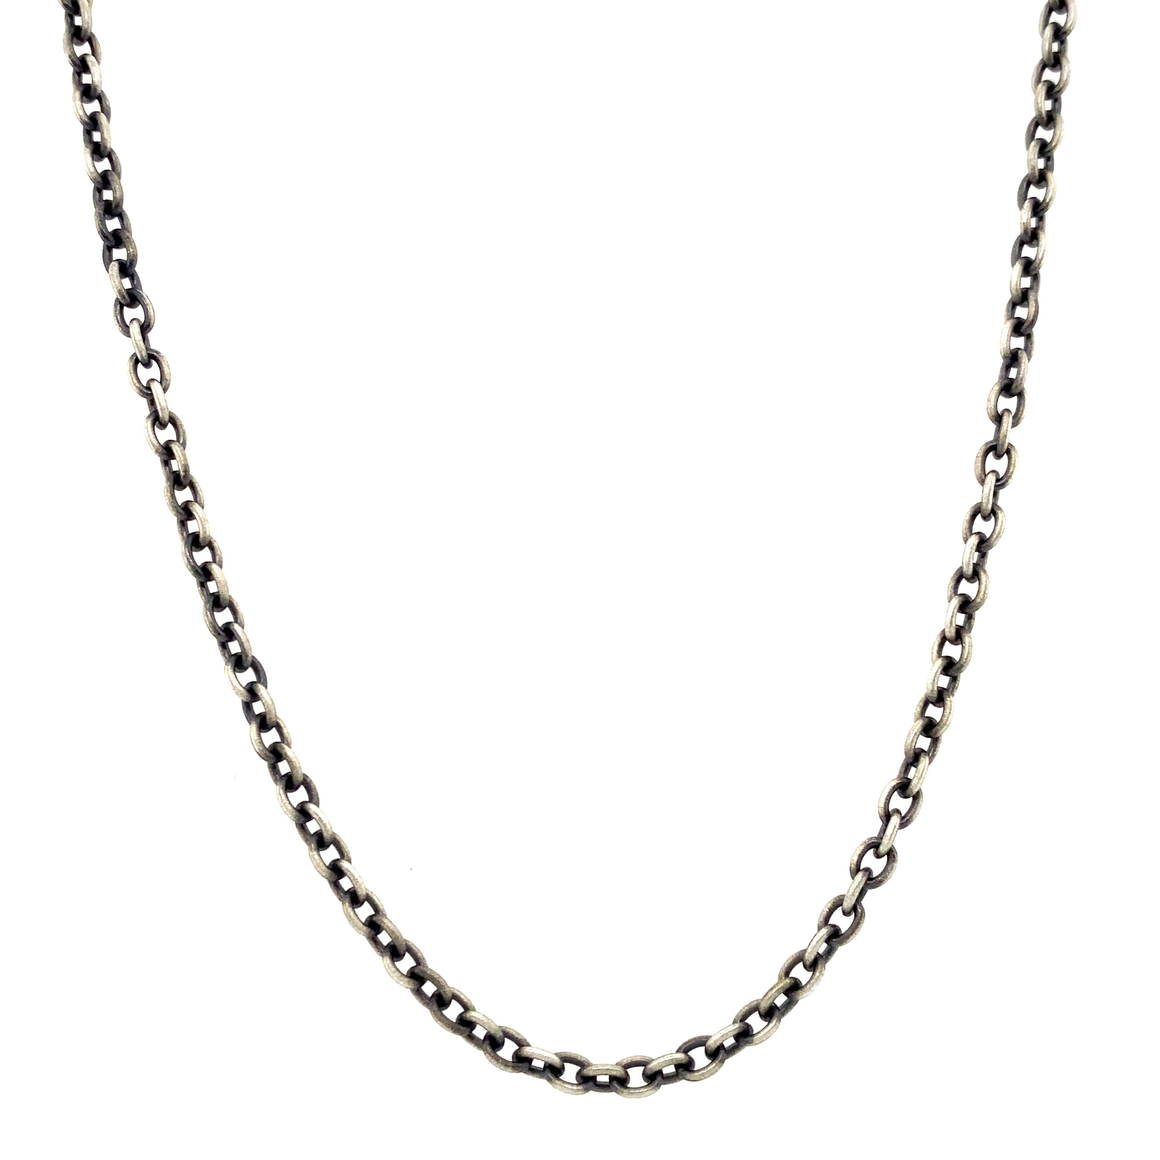 Oxidized Sterling Silver Chain - Lesley Ann Jewels